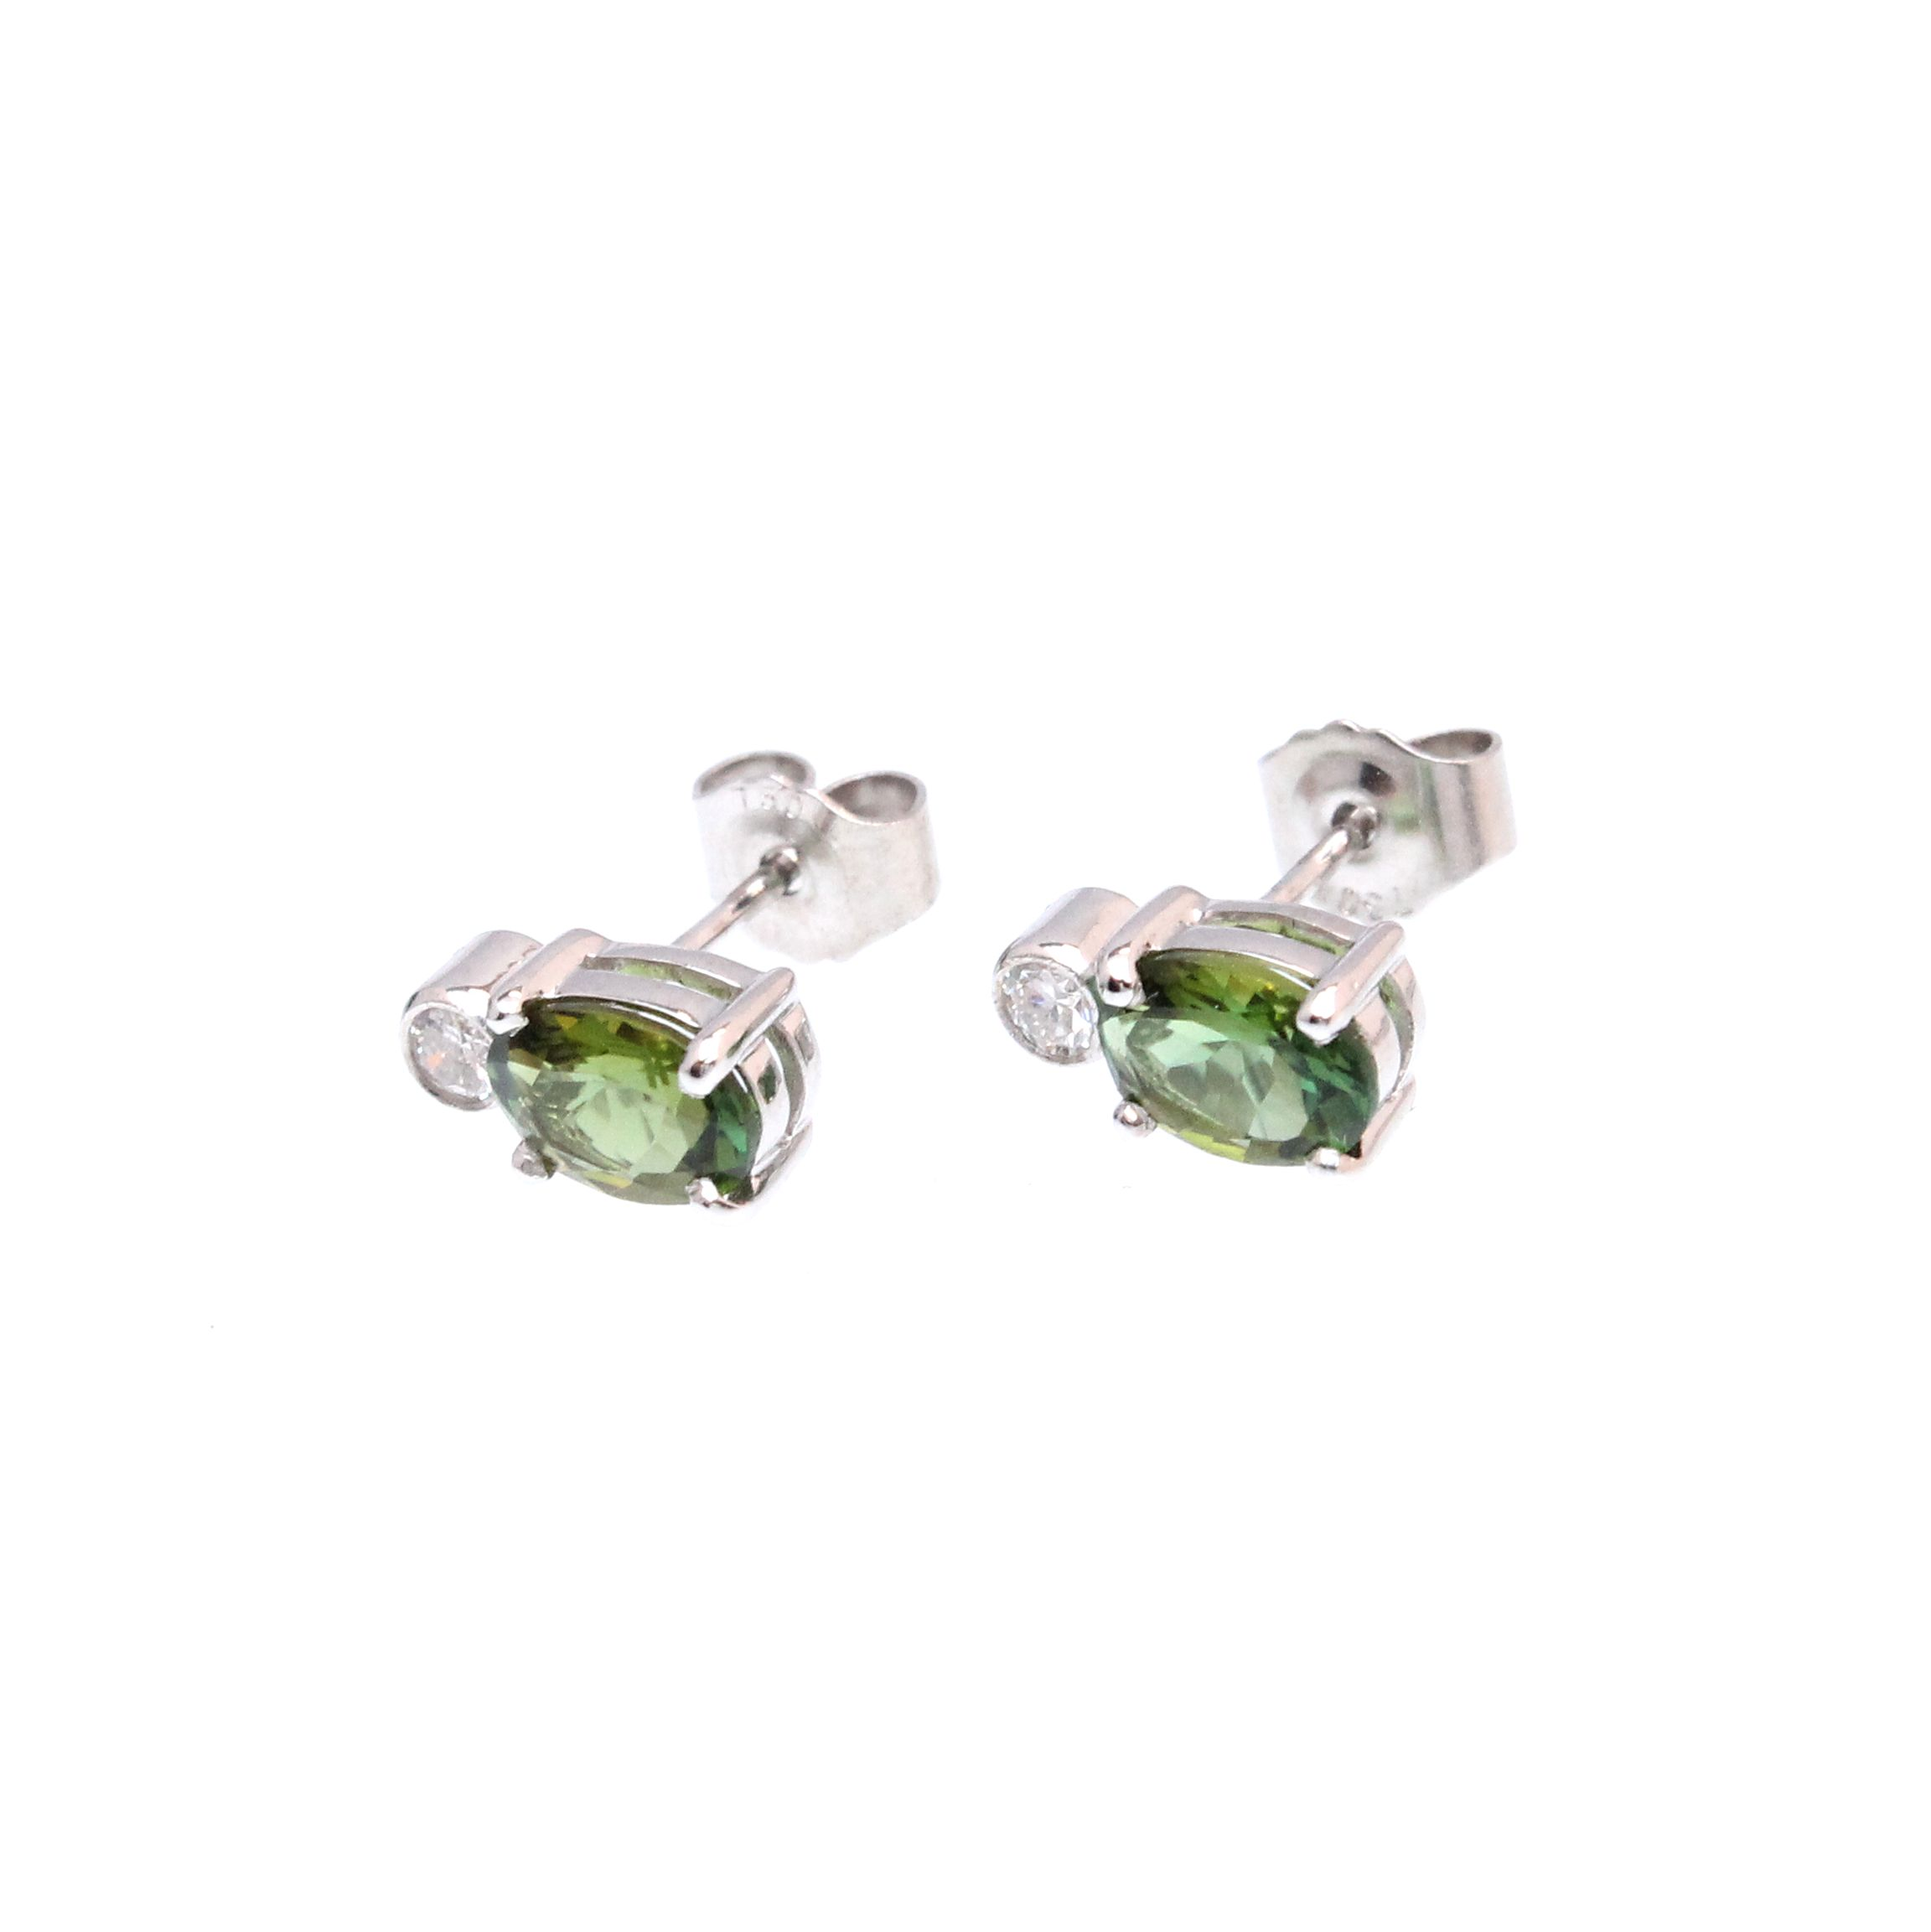 brilliant brilliantcut diamond earrings sixclaw claw stud aurora cut studs